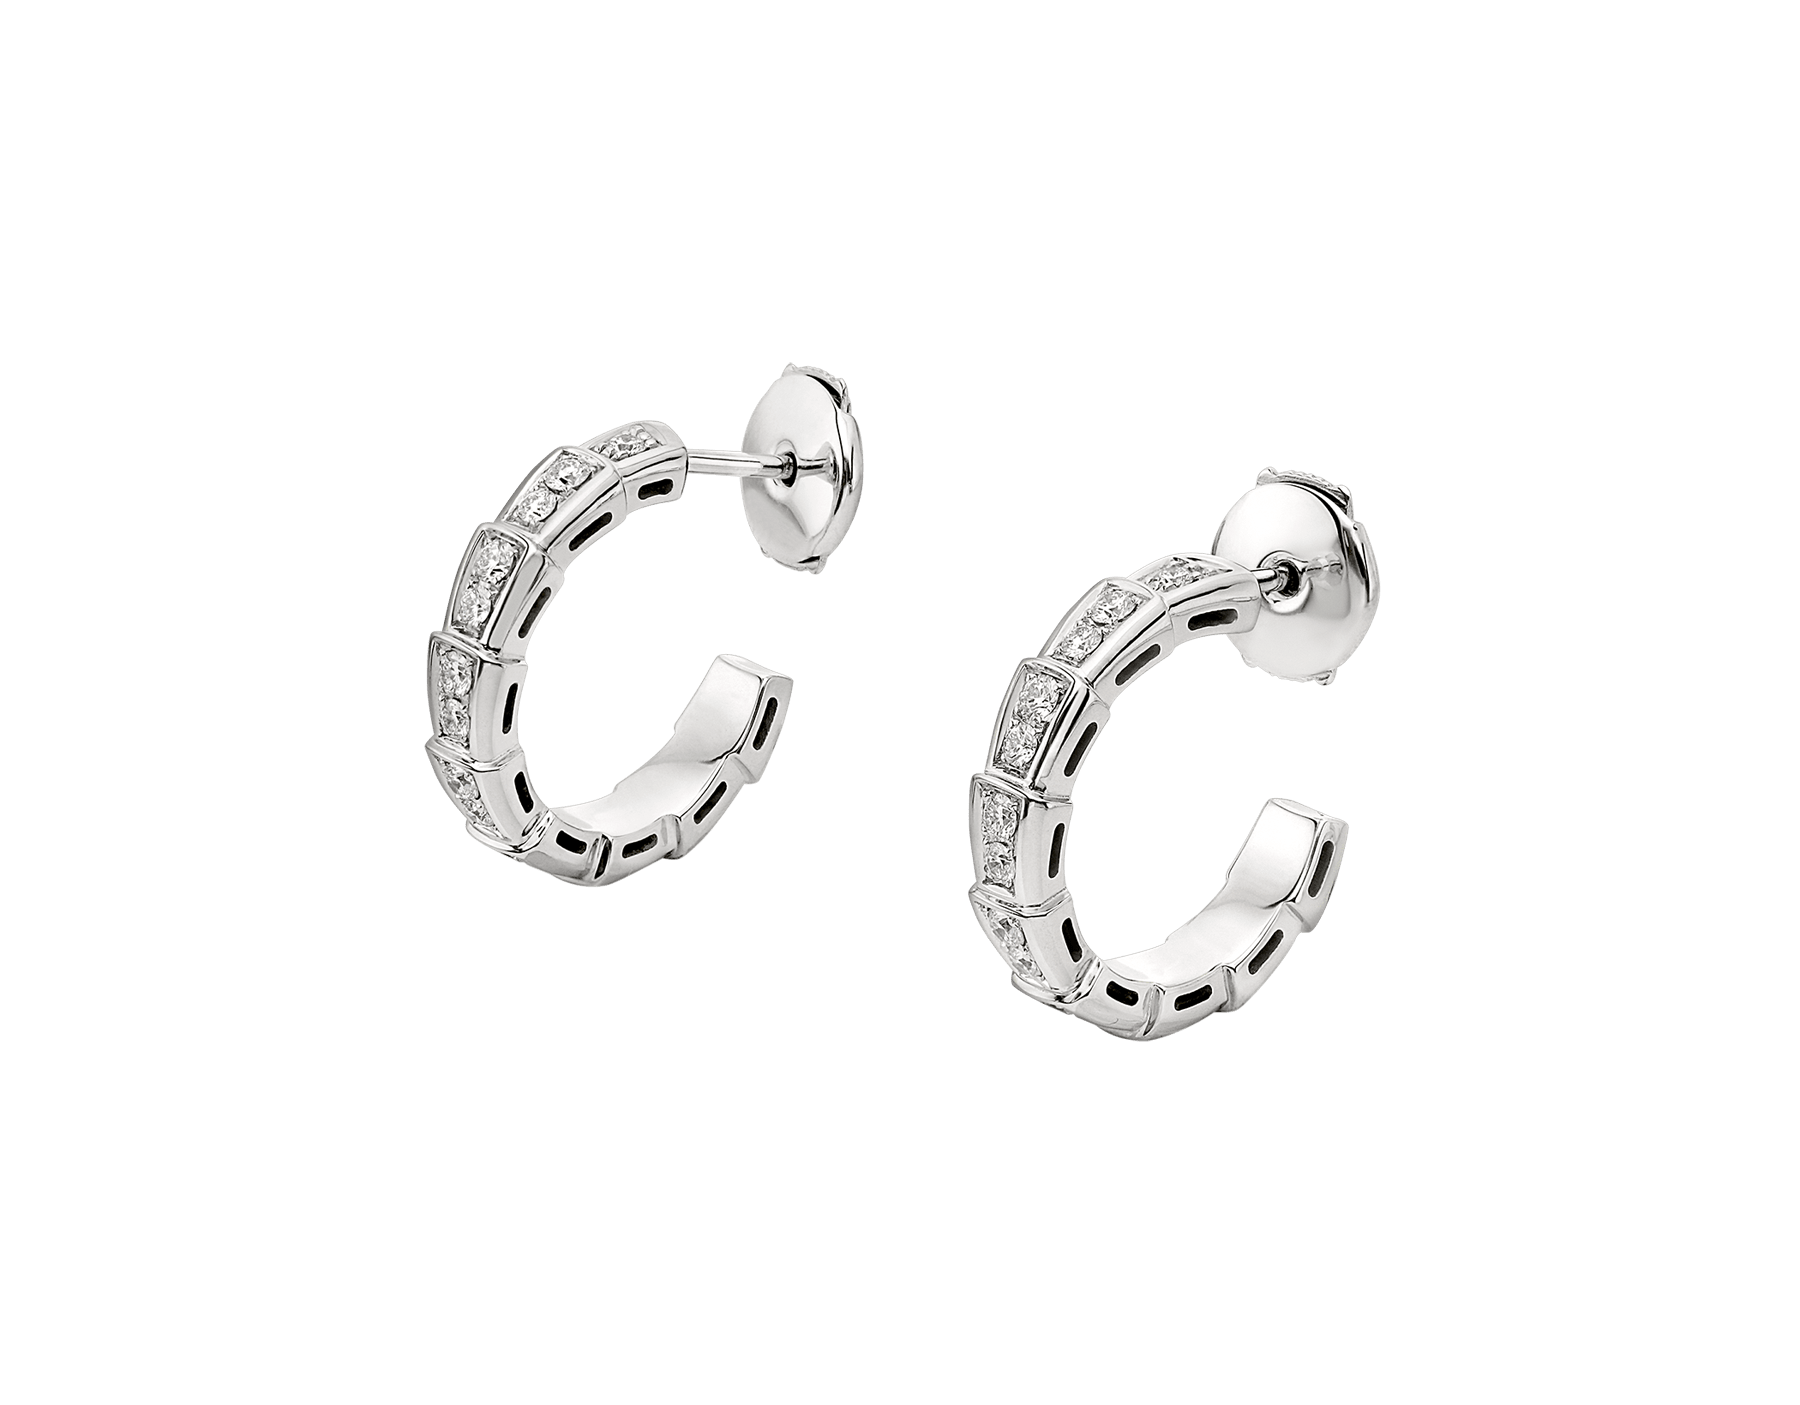 Serpenti Viper 18 kt white gold earrings set with pavé diamonds. 356172 image 2